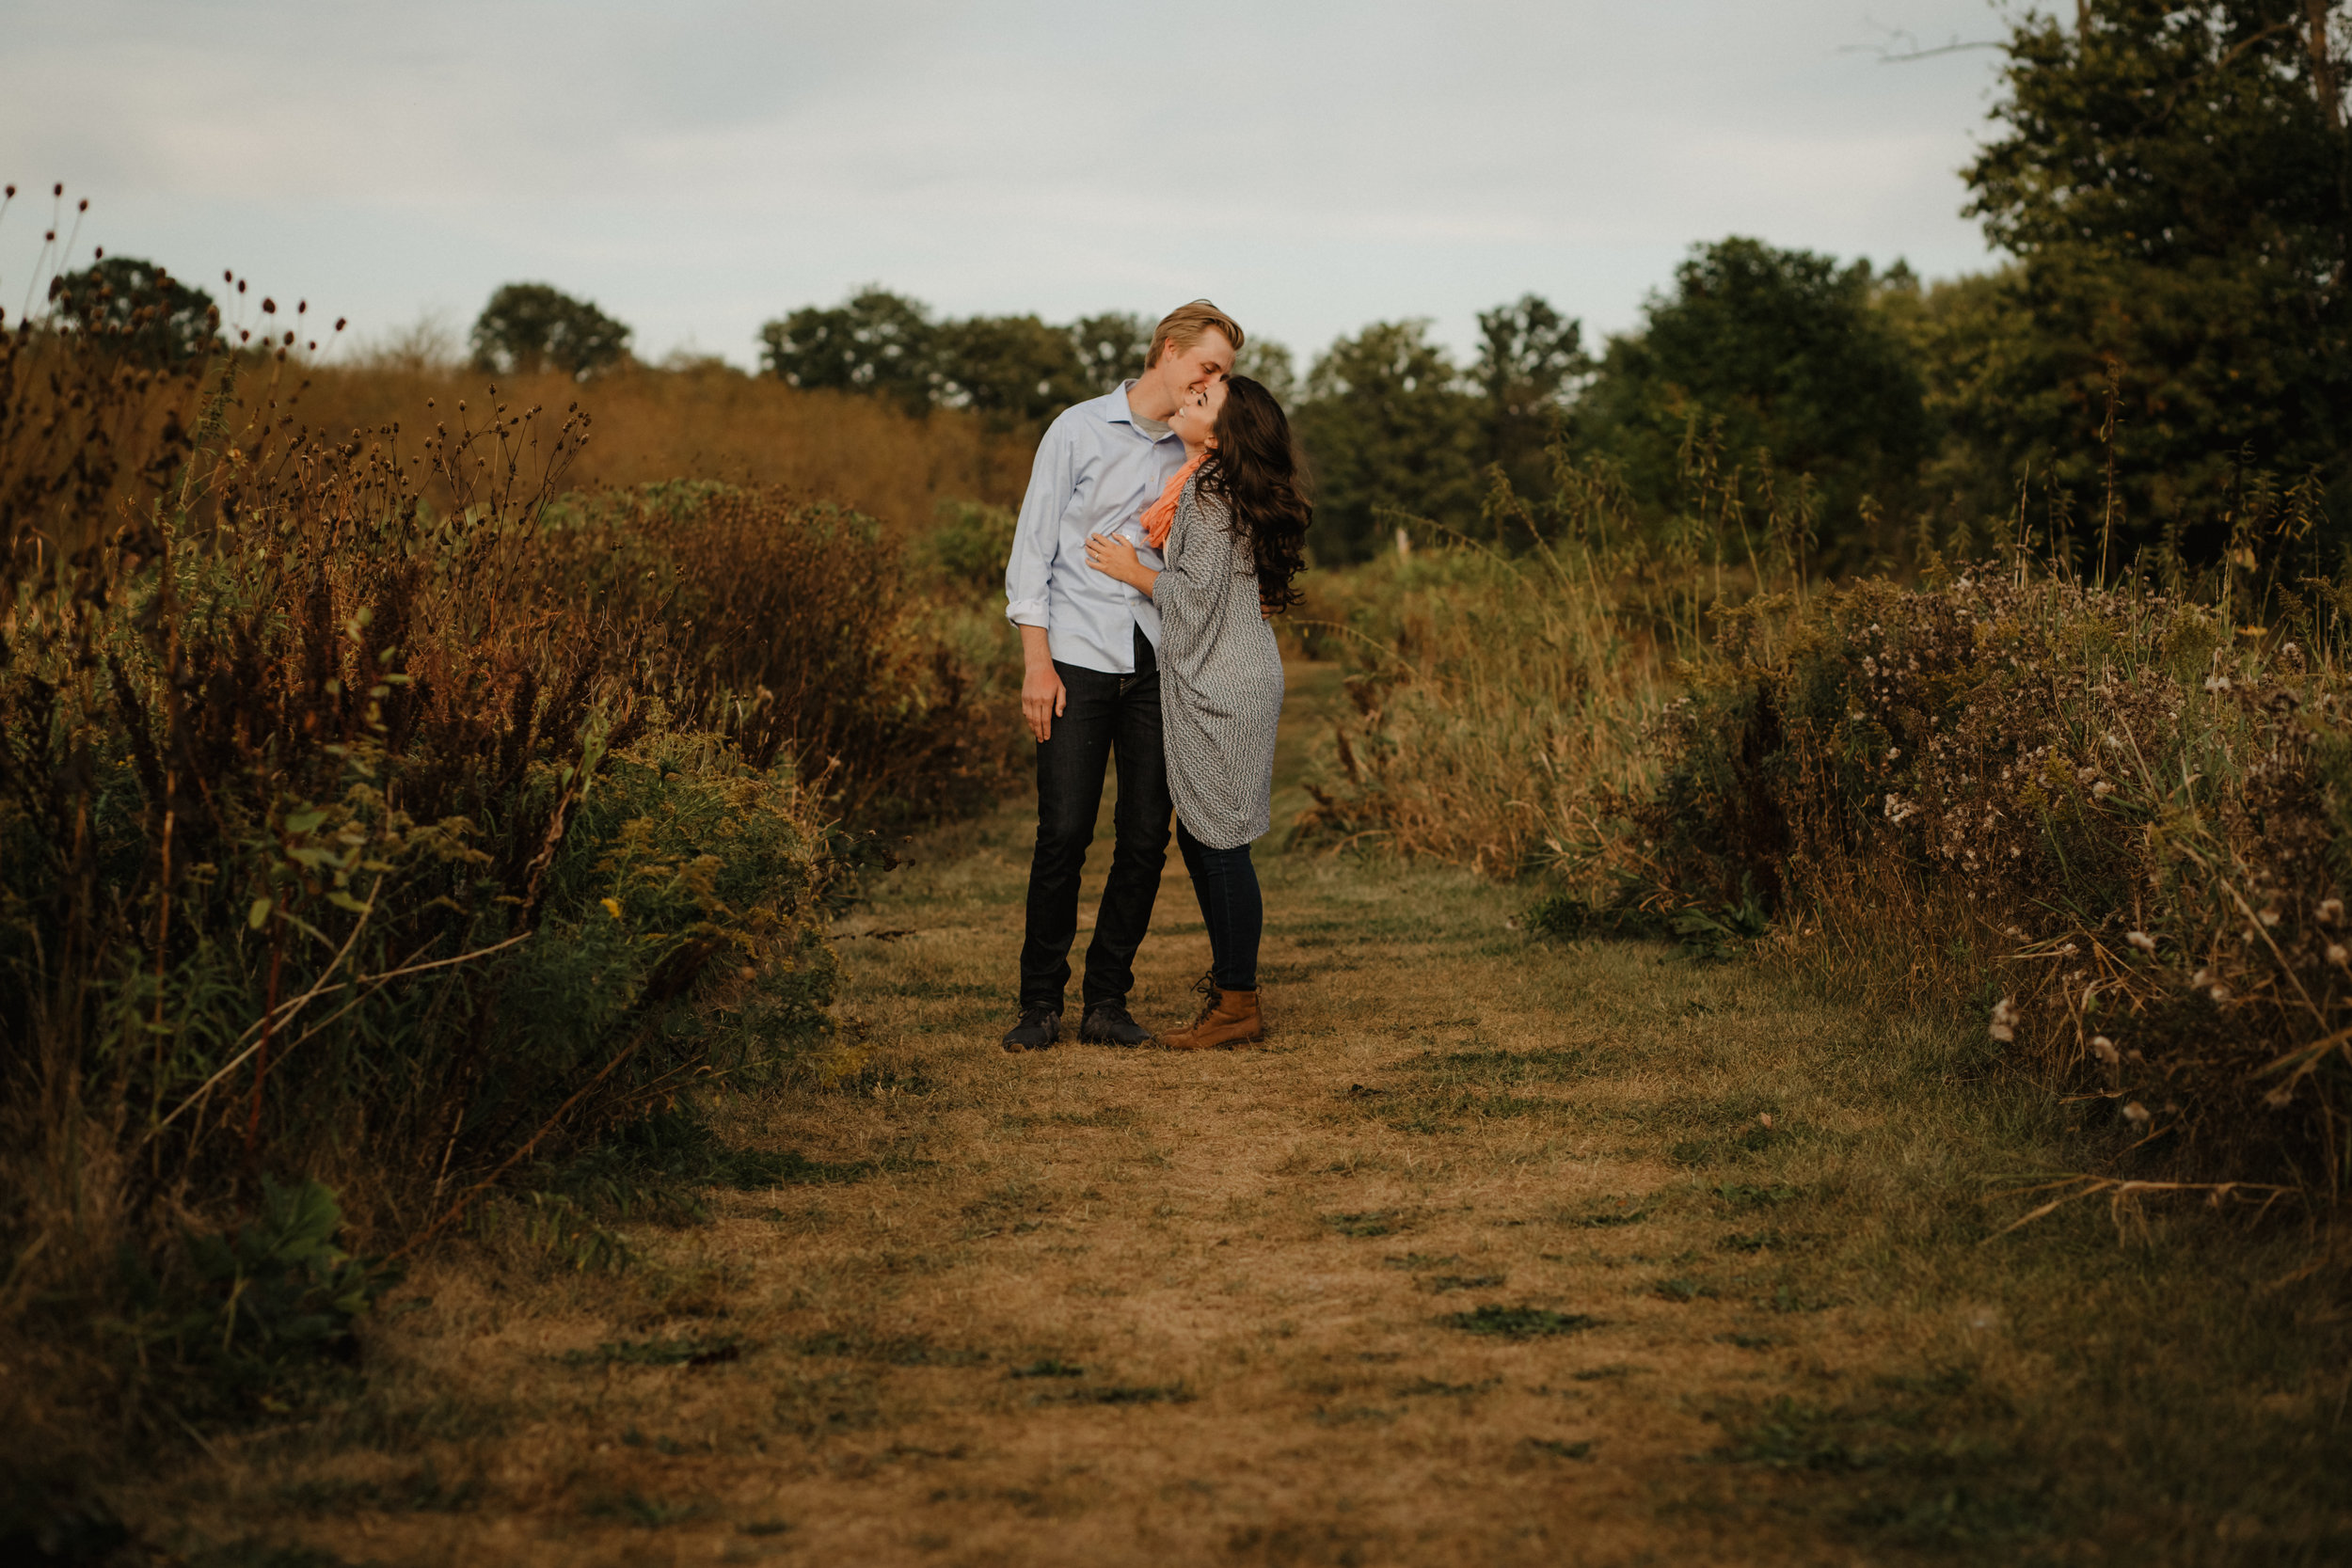 Claire-Rex-Pickar-Engagement-Photography-Collection-204.jpg